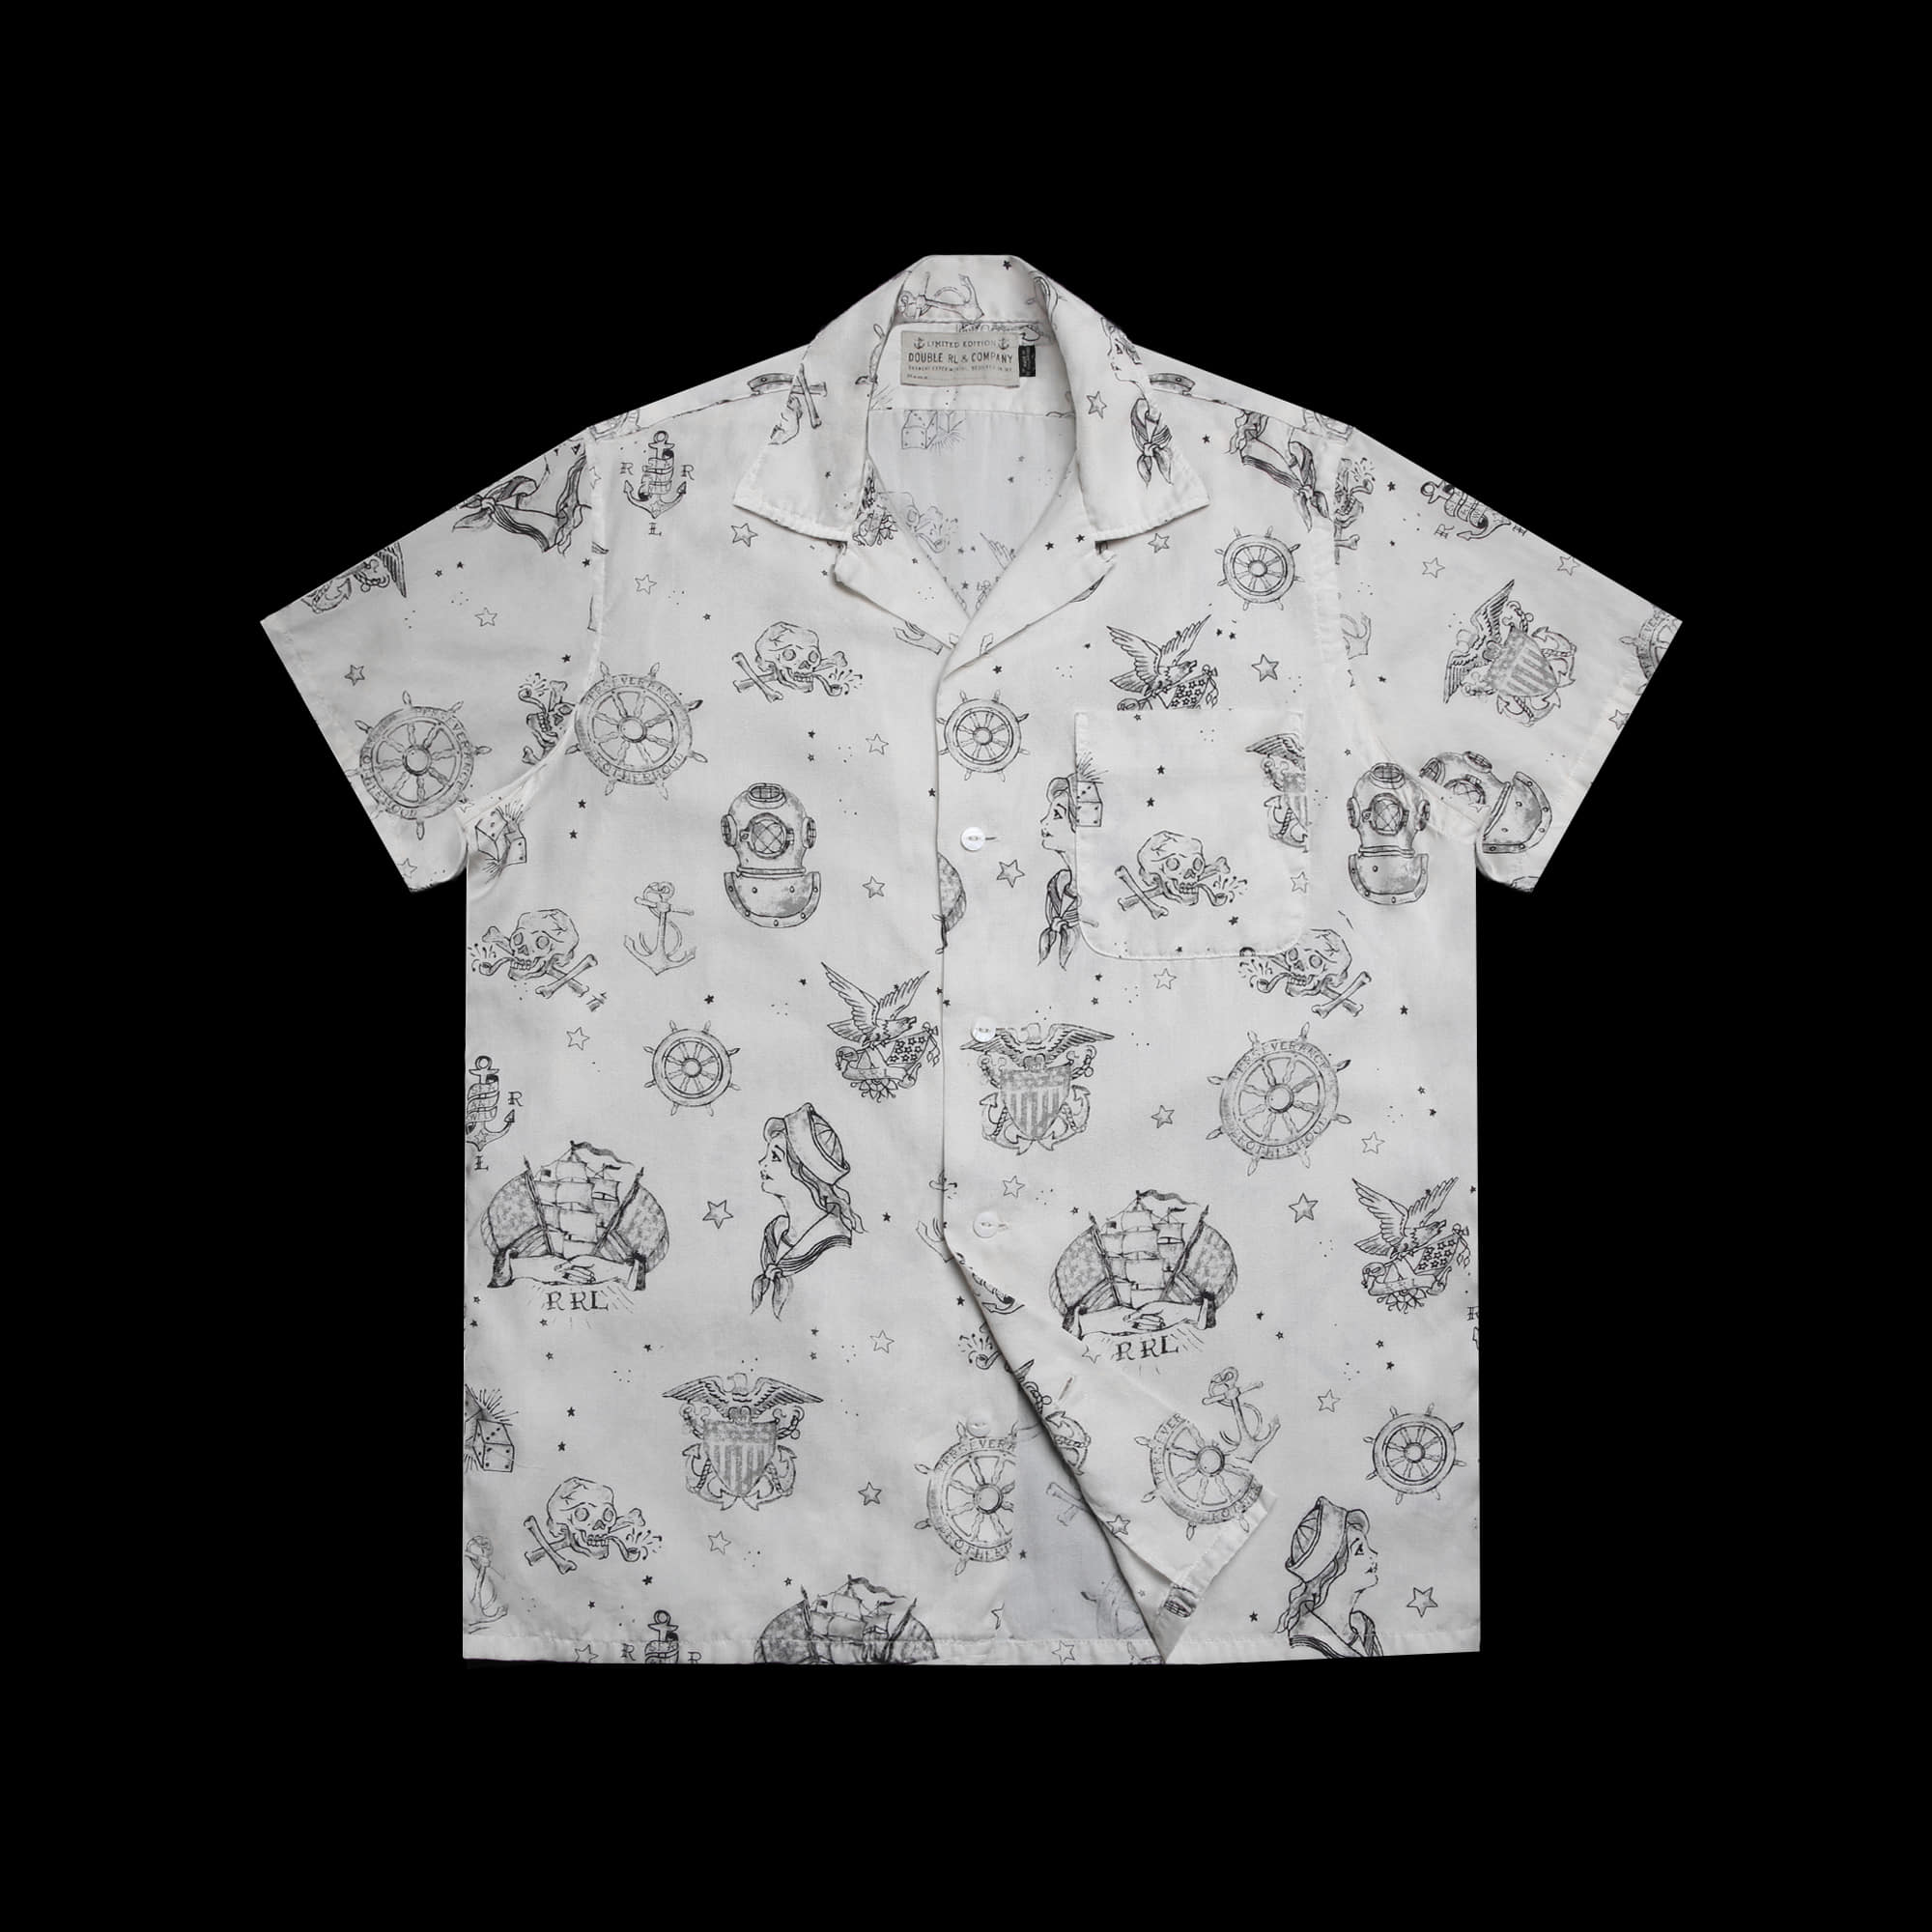 RRLLIMITED EDITIONHAWAIIAN SHIRT